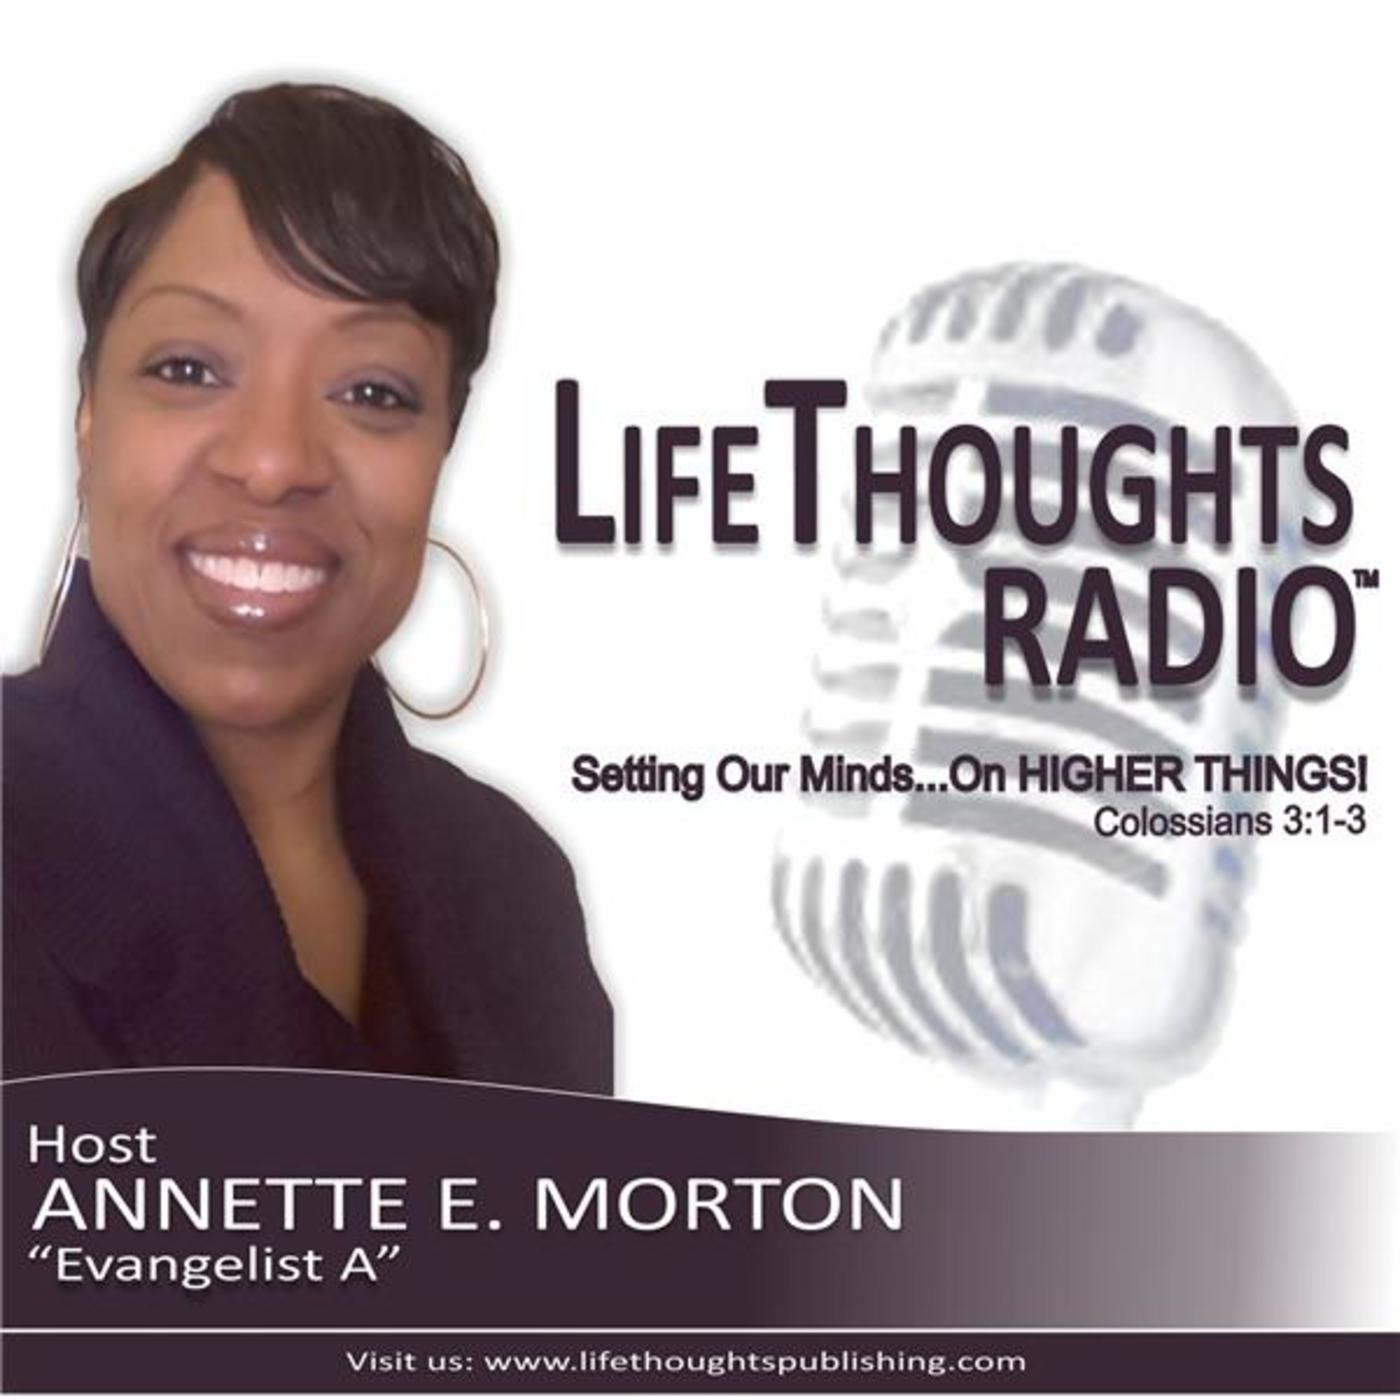 LifeThoughts Radio